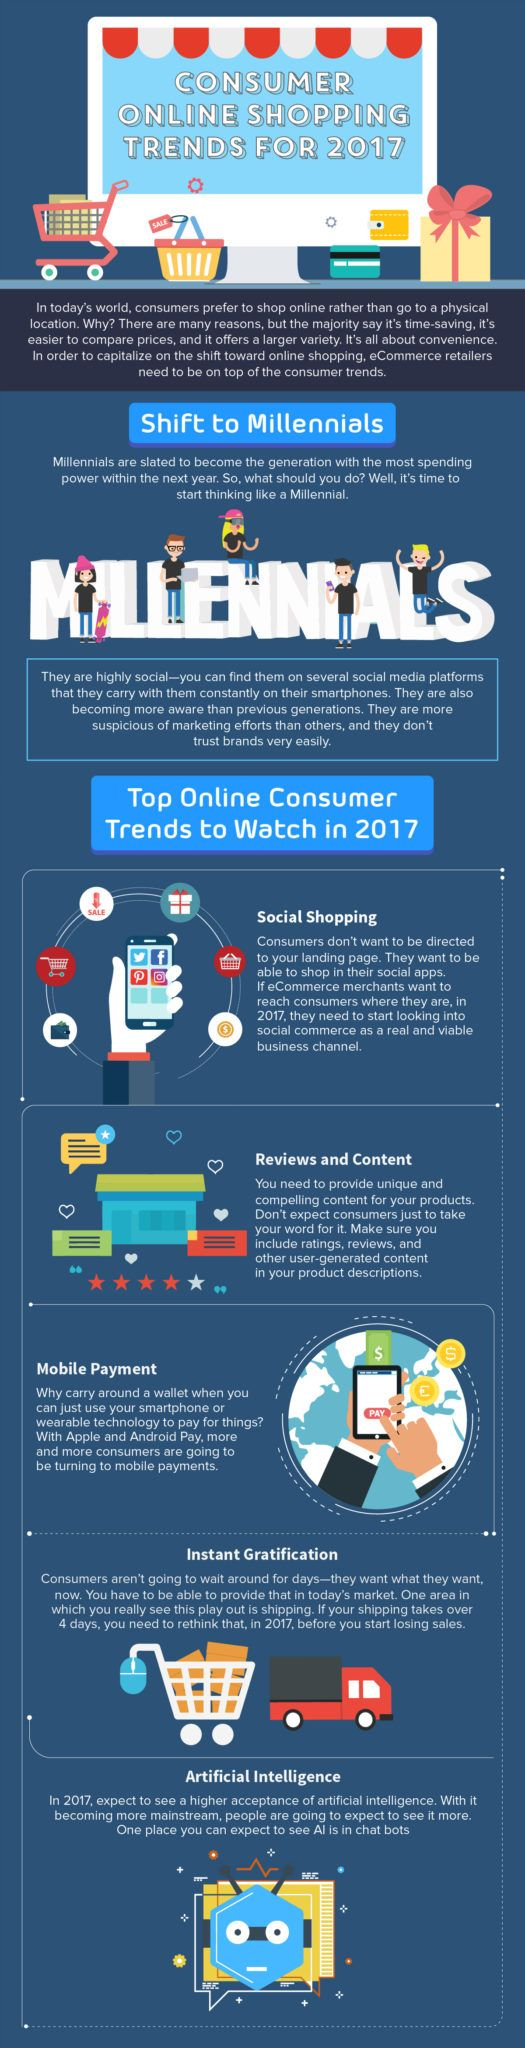 View mobile site about digitalbuyer com affiliate program site map - Top 8 Trends For Online Retailers 2017